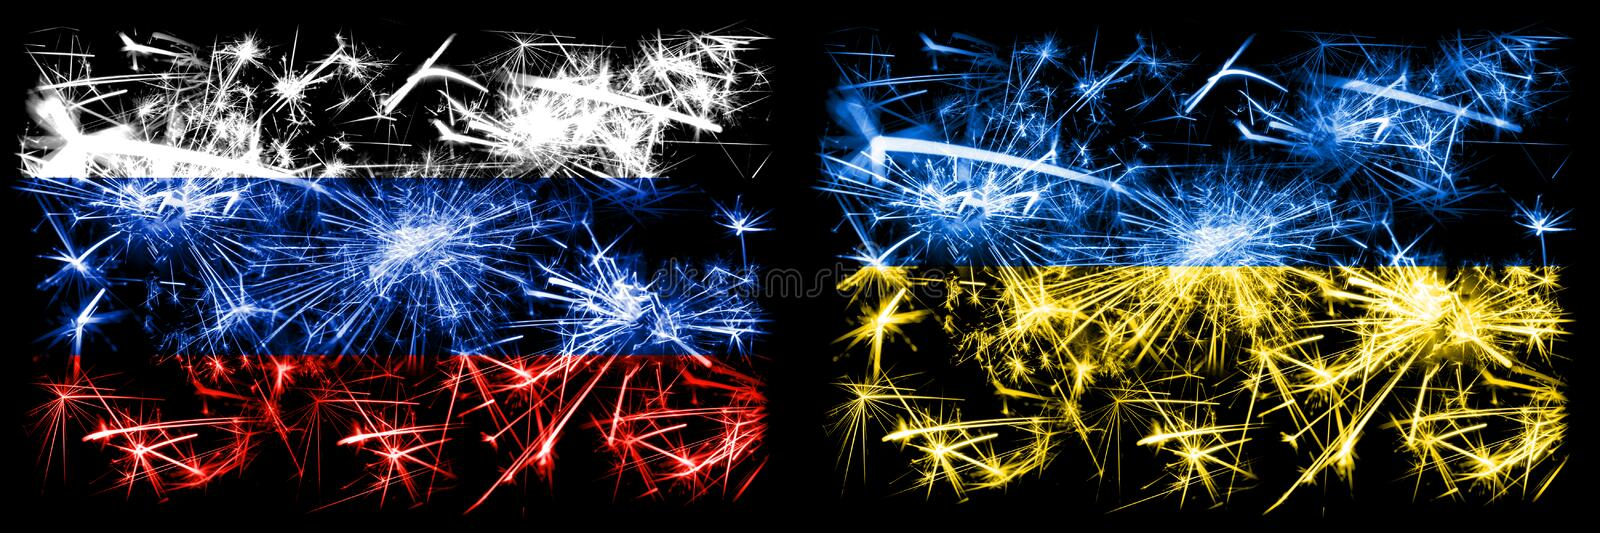 Russia, Russian vs Ukraine, Ukrainian New Year celebration sparkling fireworks flags concept background. Combination of two states vector illustration